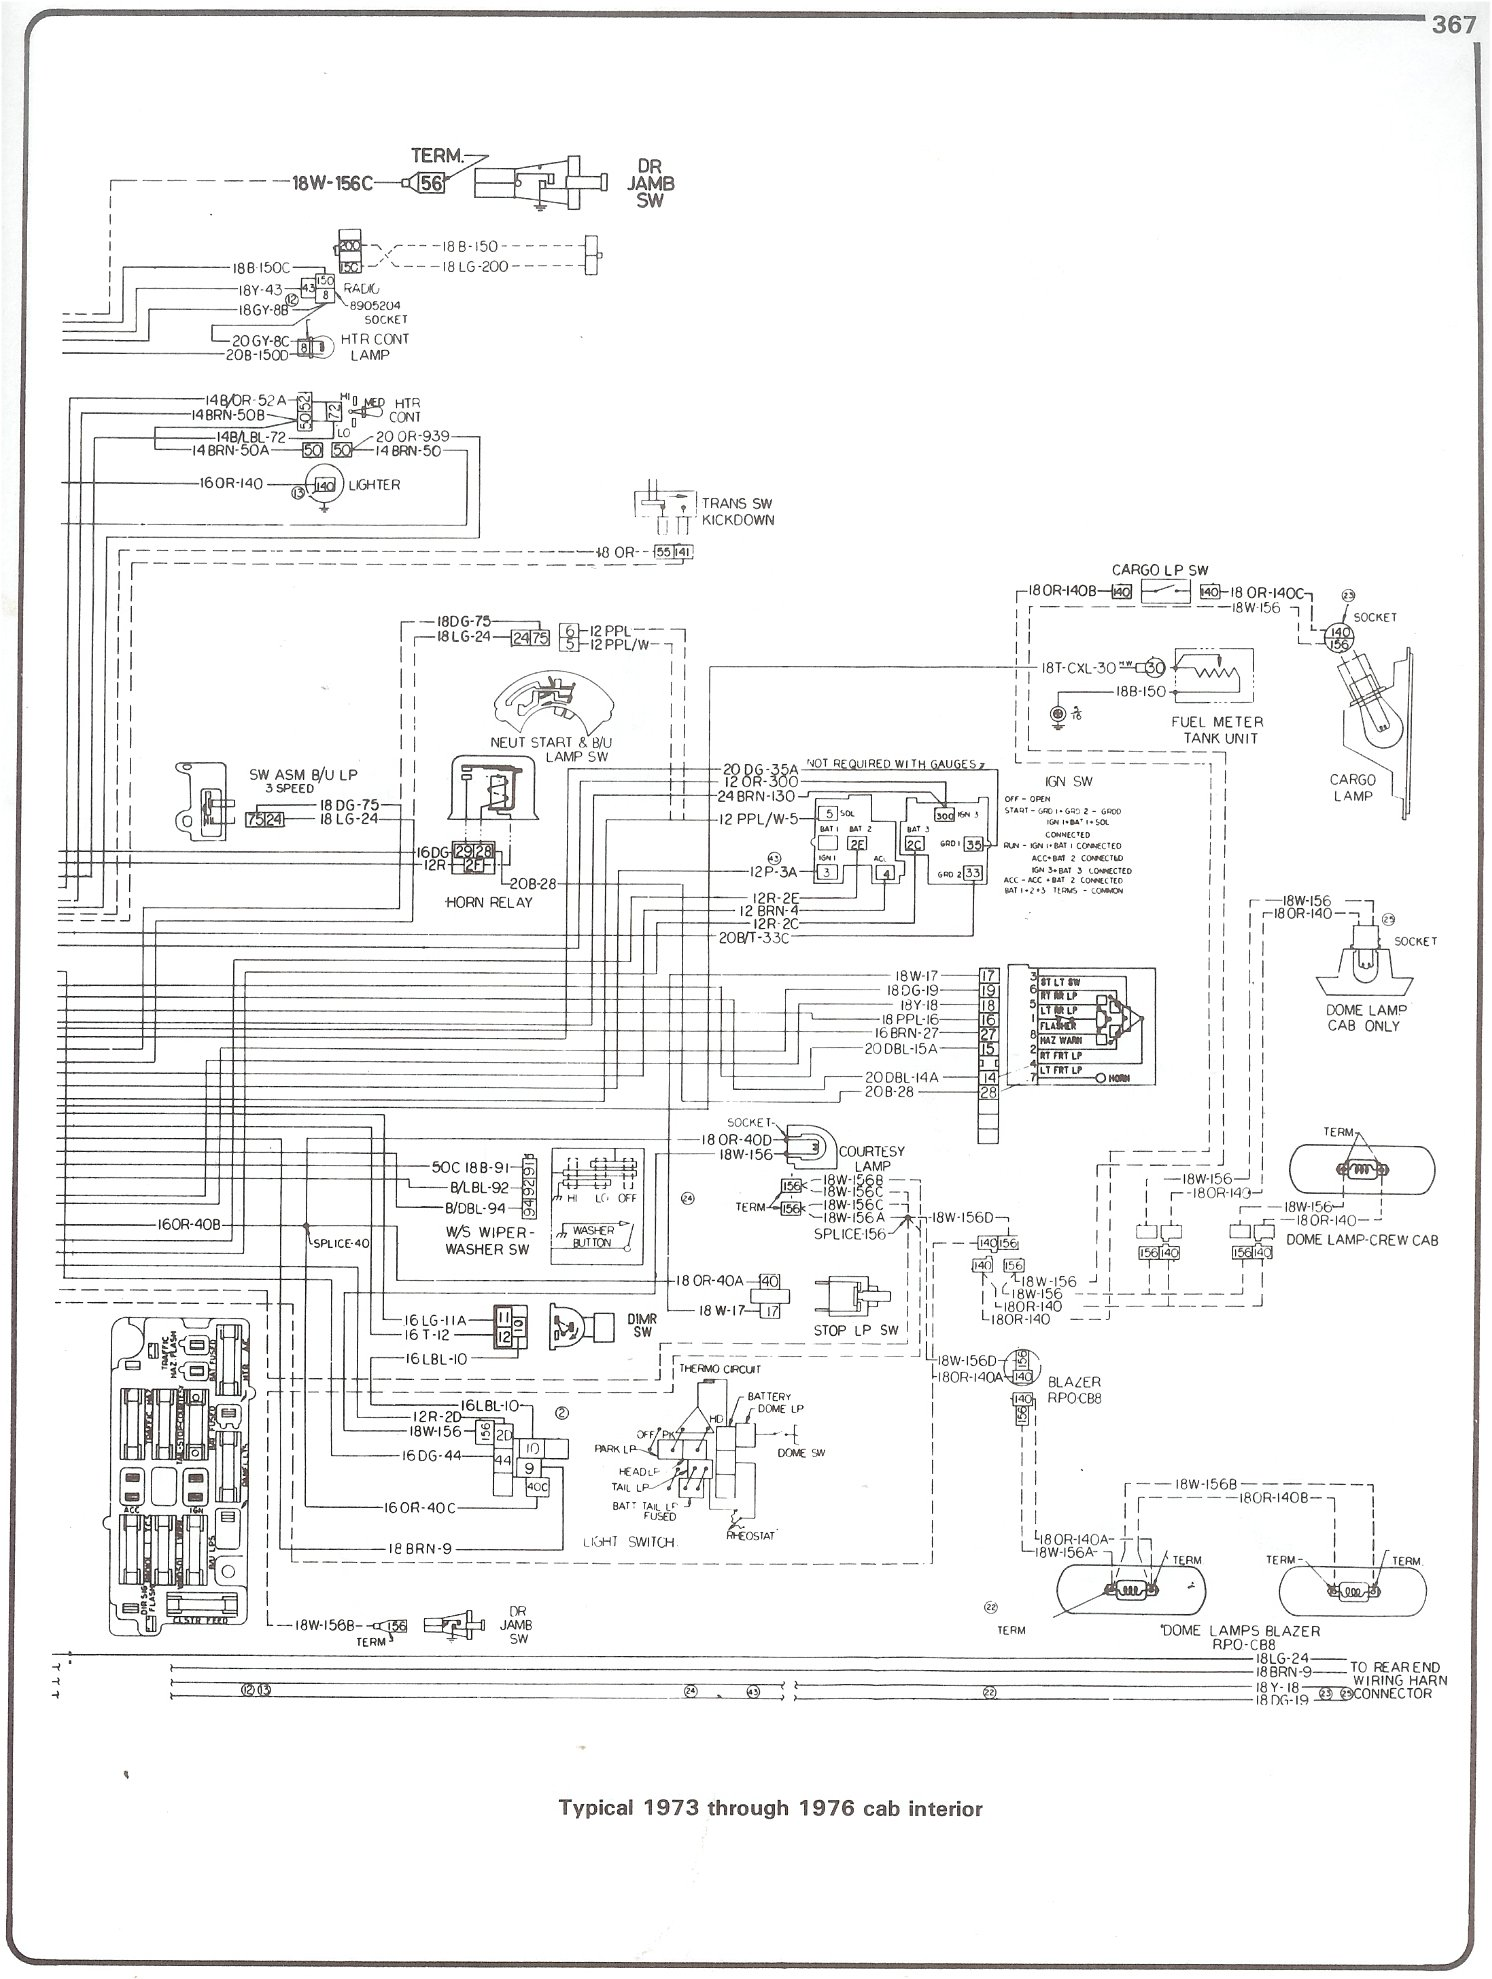 88 K1500 Fuse Block Wiring Diagram Start Building A Jeep Cj7 Content Resource Of Rh Uberstuff Co Automotive Blocks